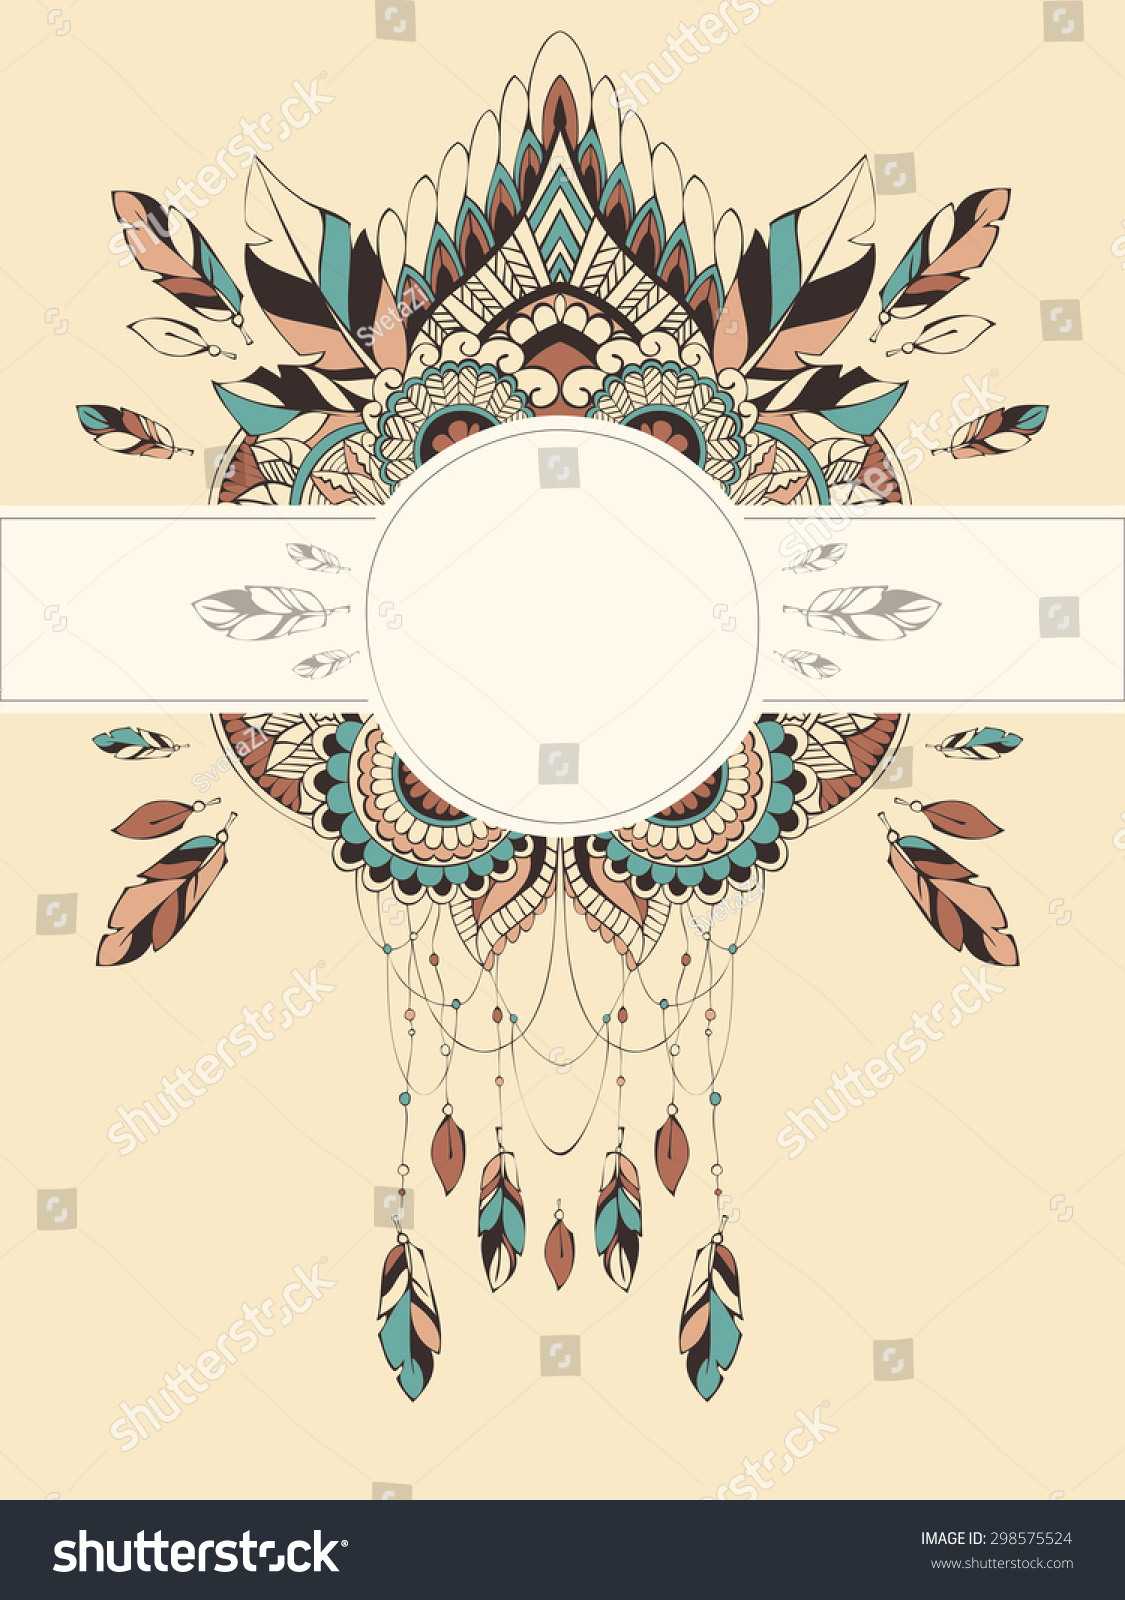 free vector green boho - photo #35